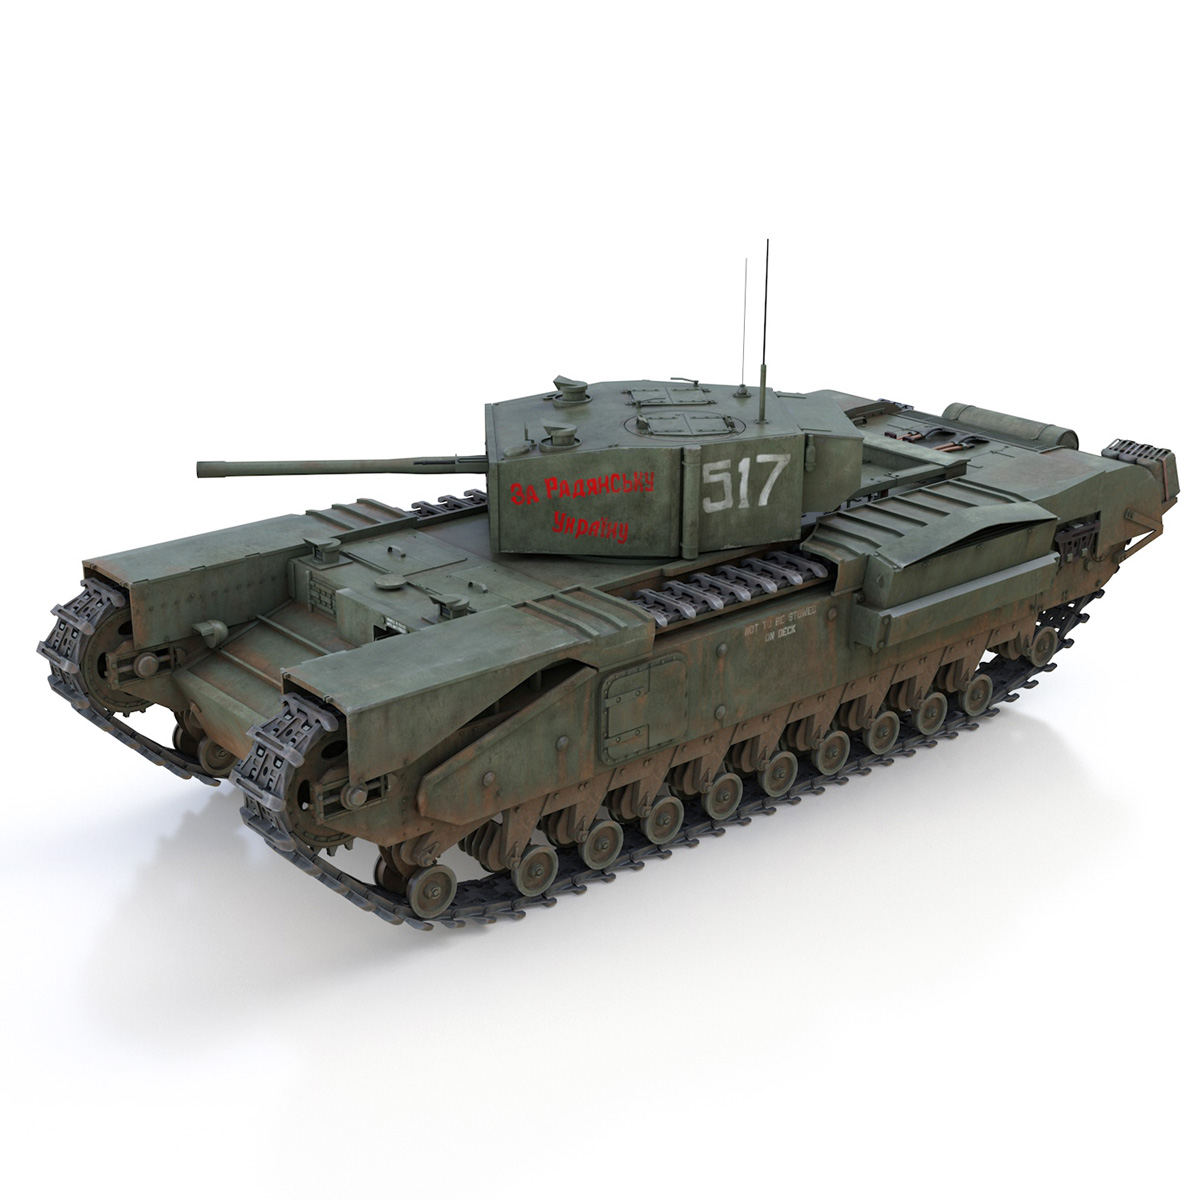 churchill mk iii - 517 - soviet army 3d загвар 3ds fbx c4d lwo obj 272976